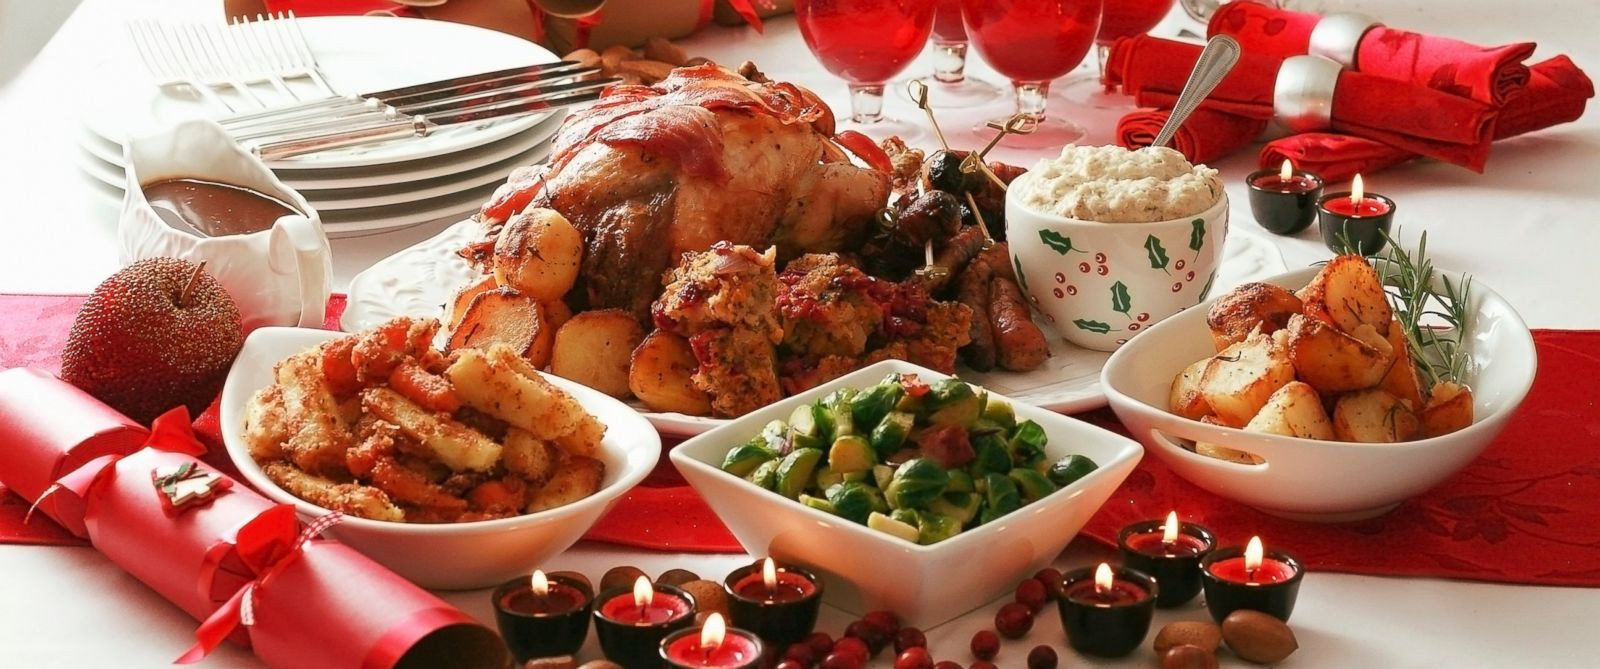 Christmas Dinner Images  How Many Calories the Average American Eats on Christmas